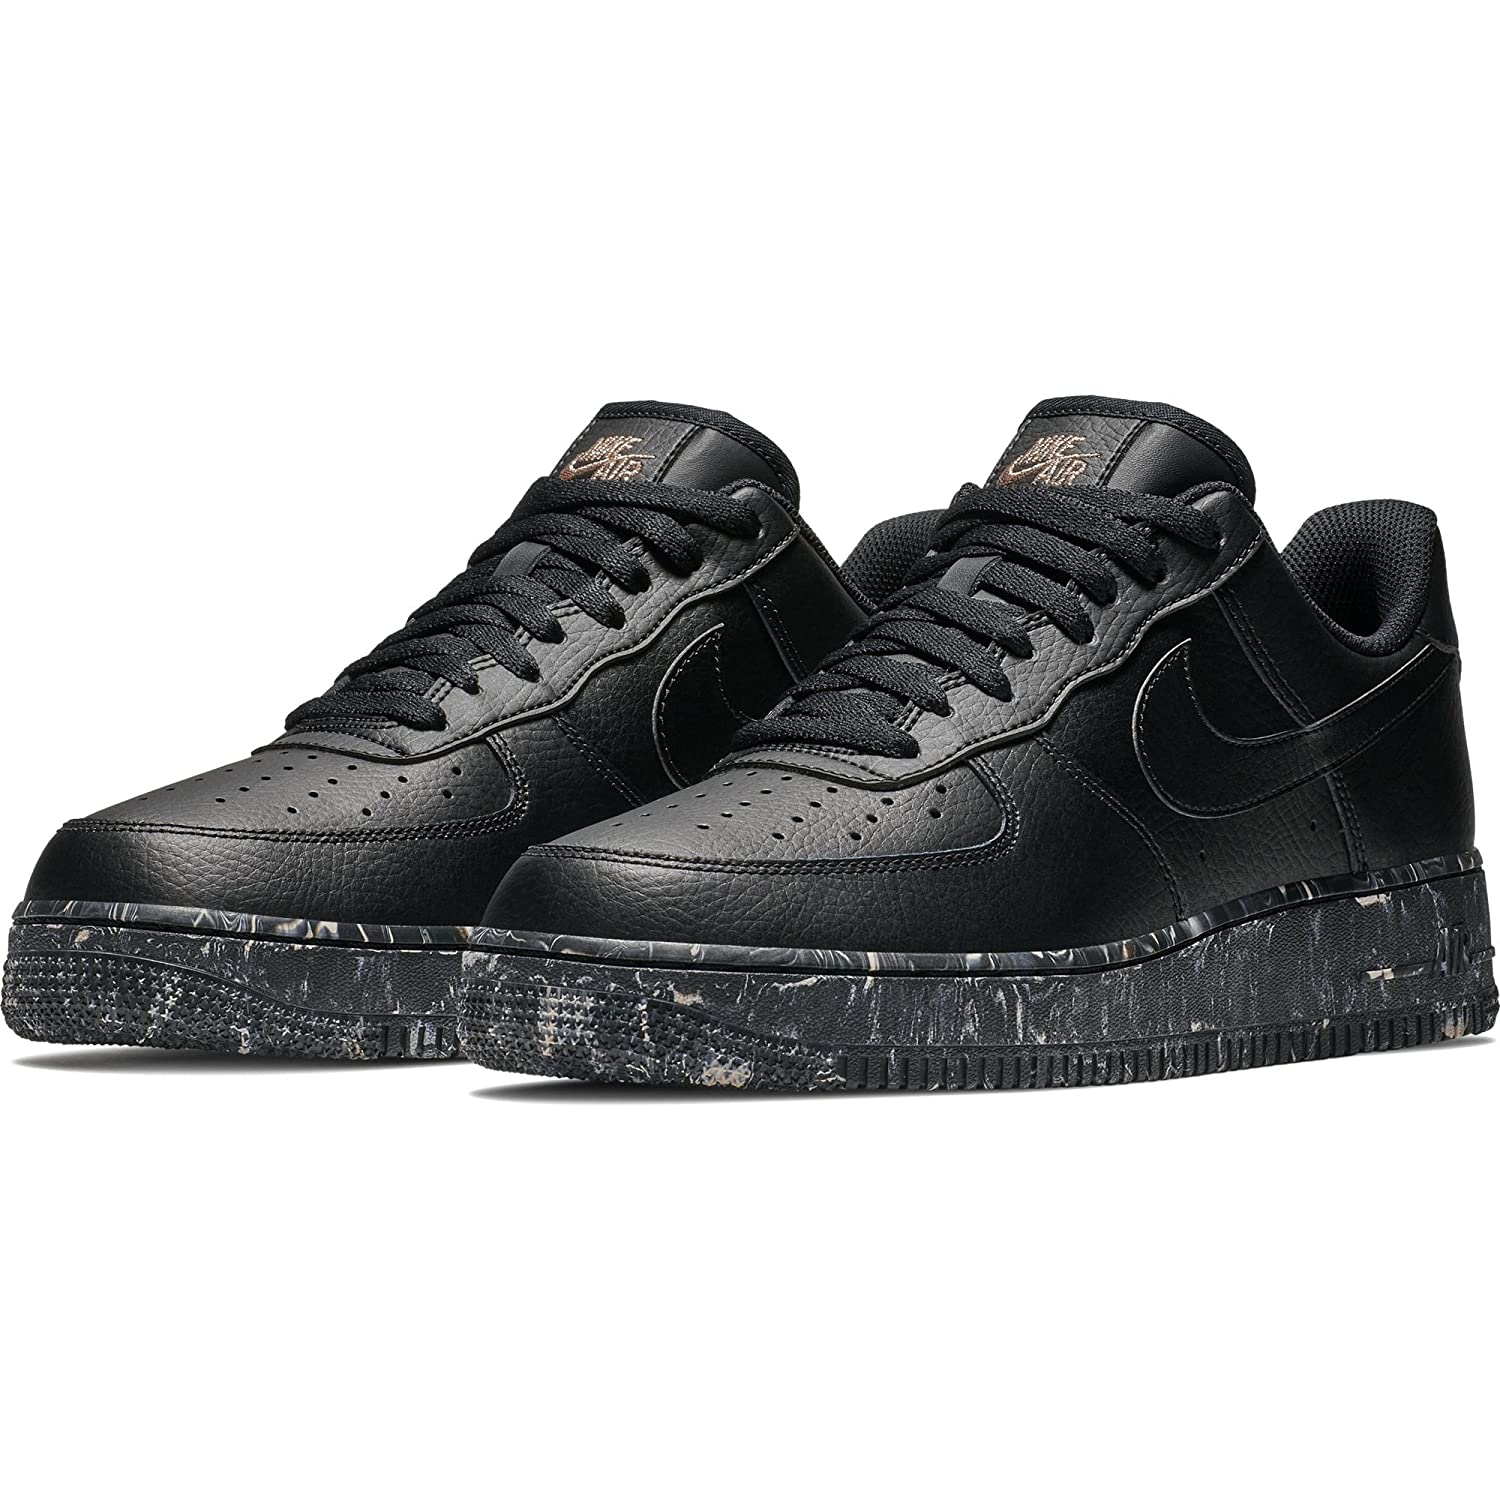 Nike Hombres Air Force B07dglsqby 1 Low Basketball Zapato B07dglsqby Force 14 D M 98b3c2